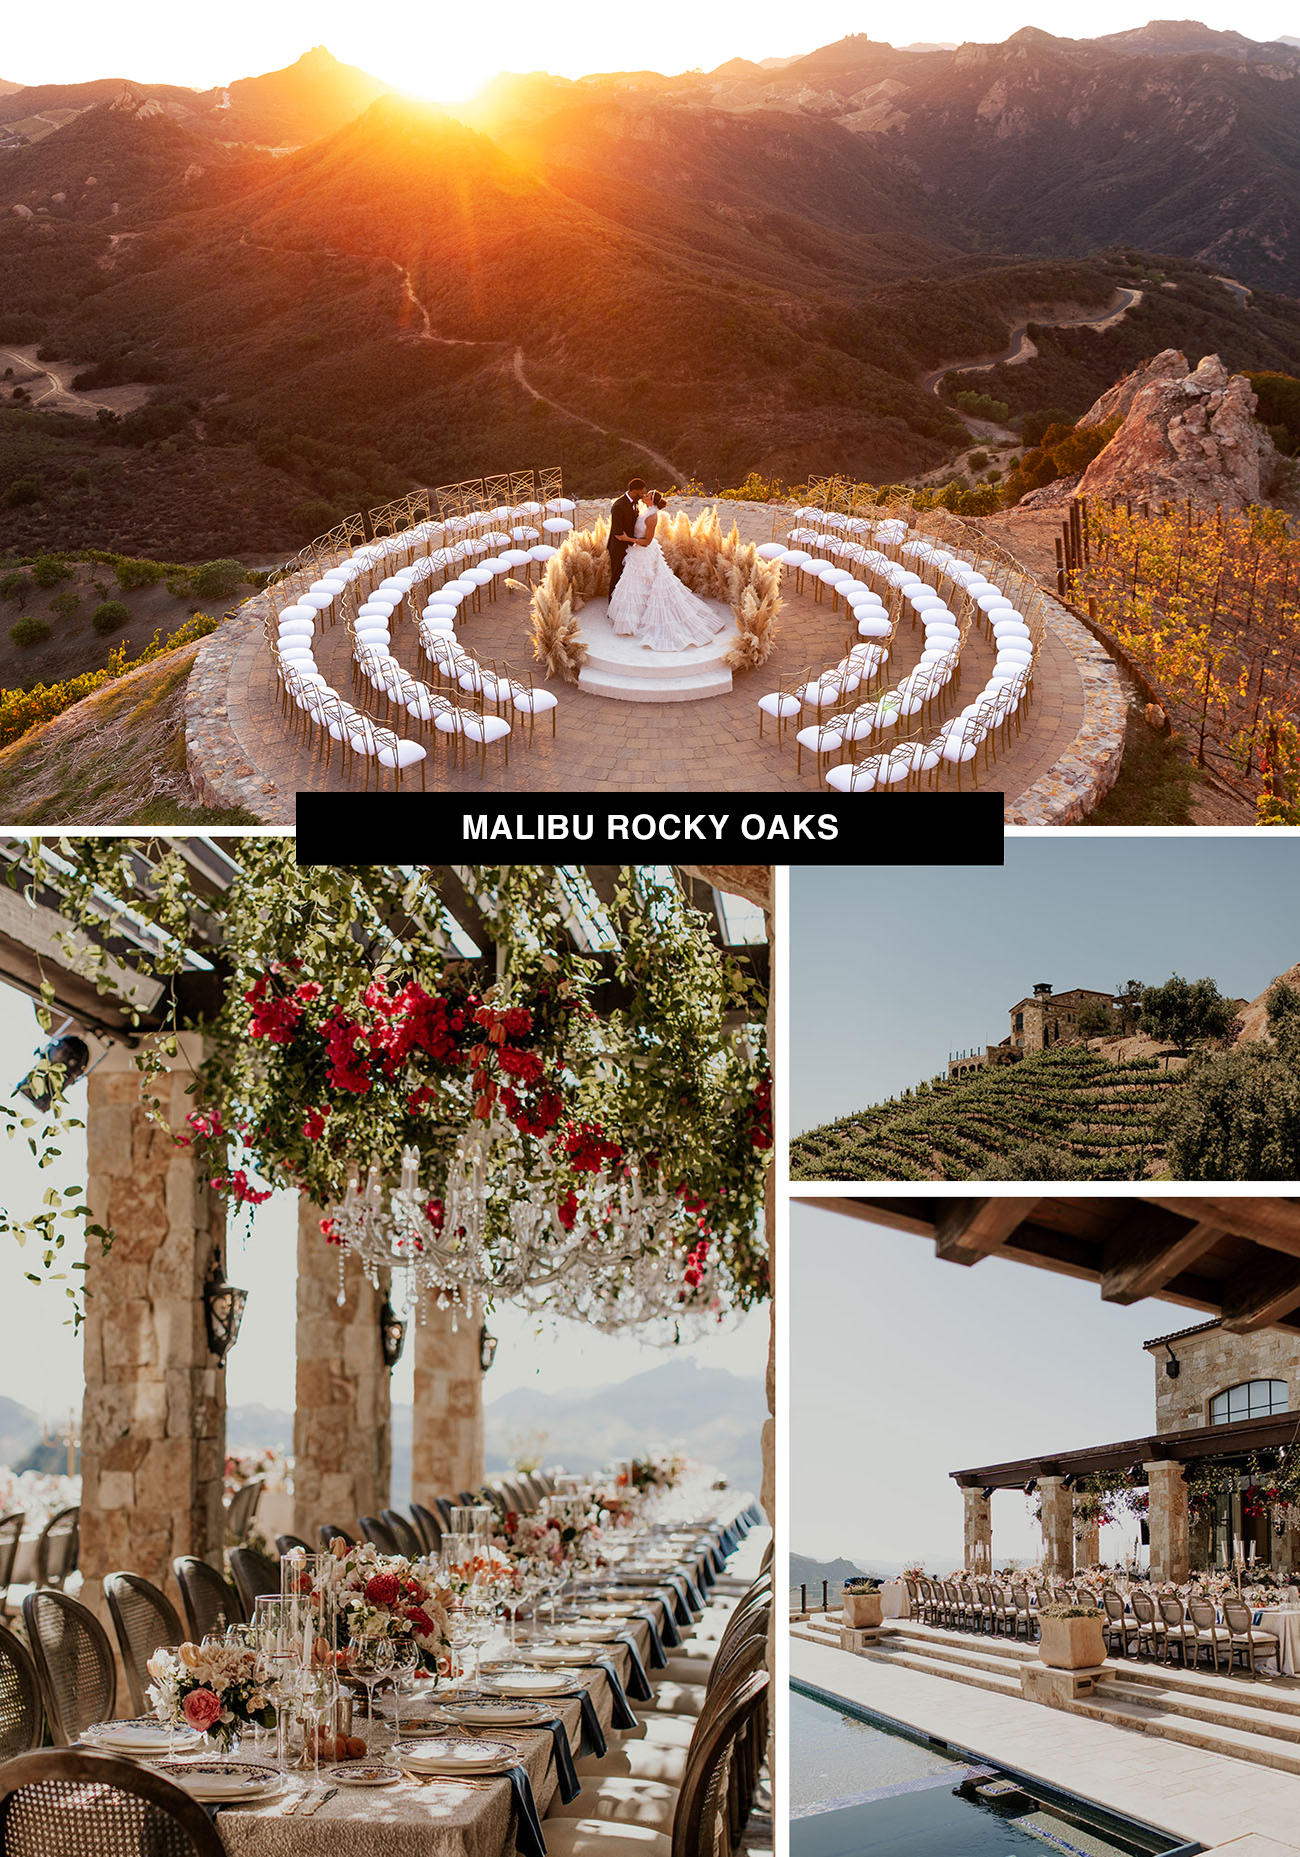 Malibu Rocky Oaks winery and wedding venue in Malibu, California is the ideal California place to get married